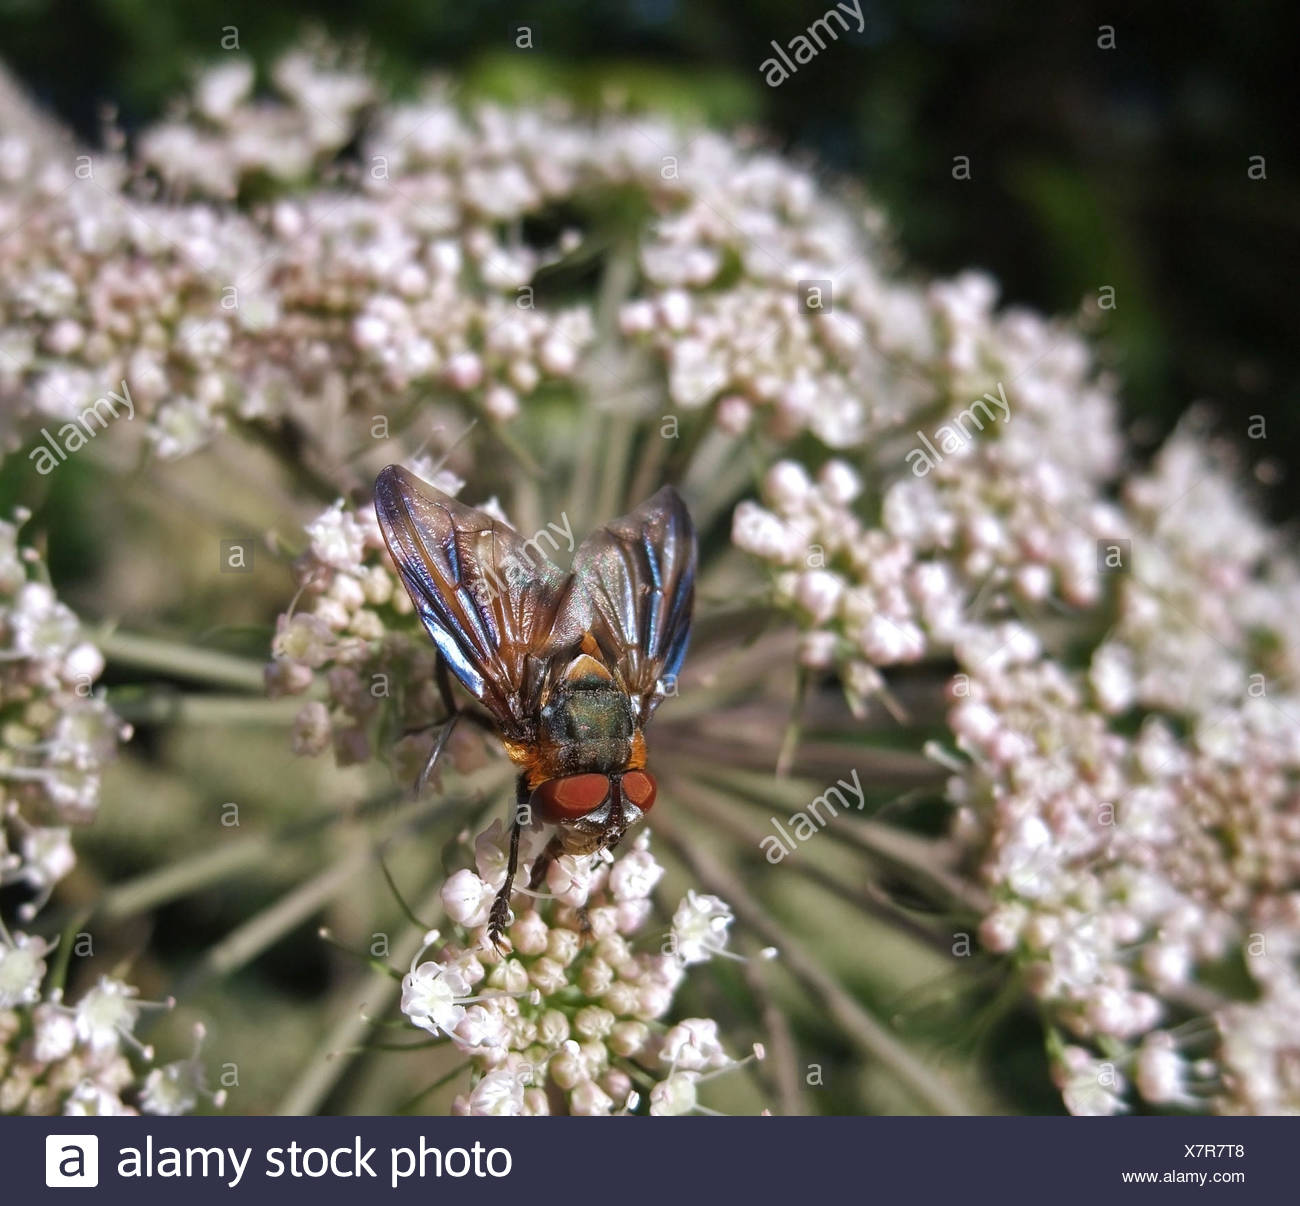 fly on wild carrot flower in sunny ambiance - Stock Image